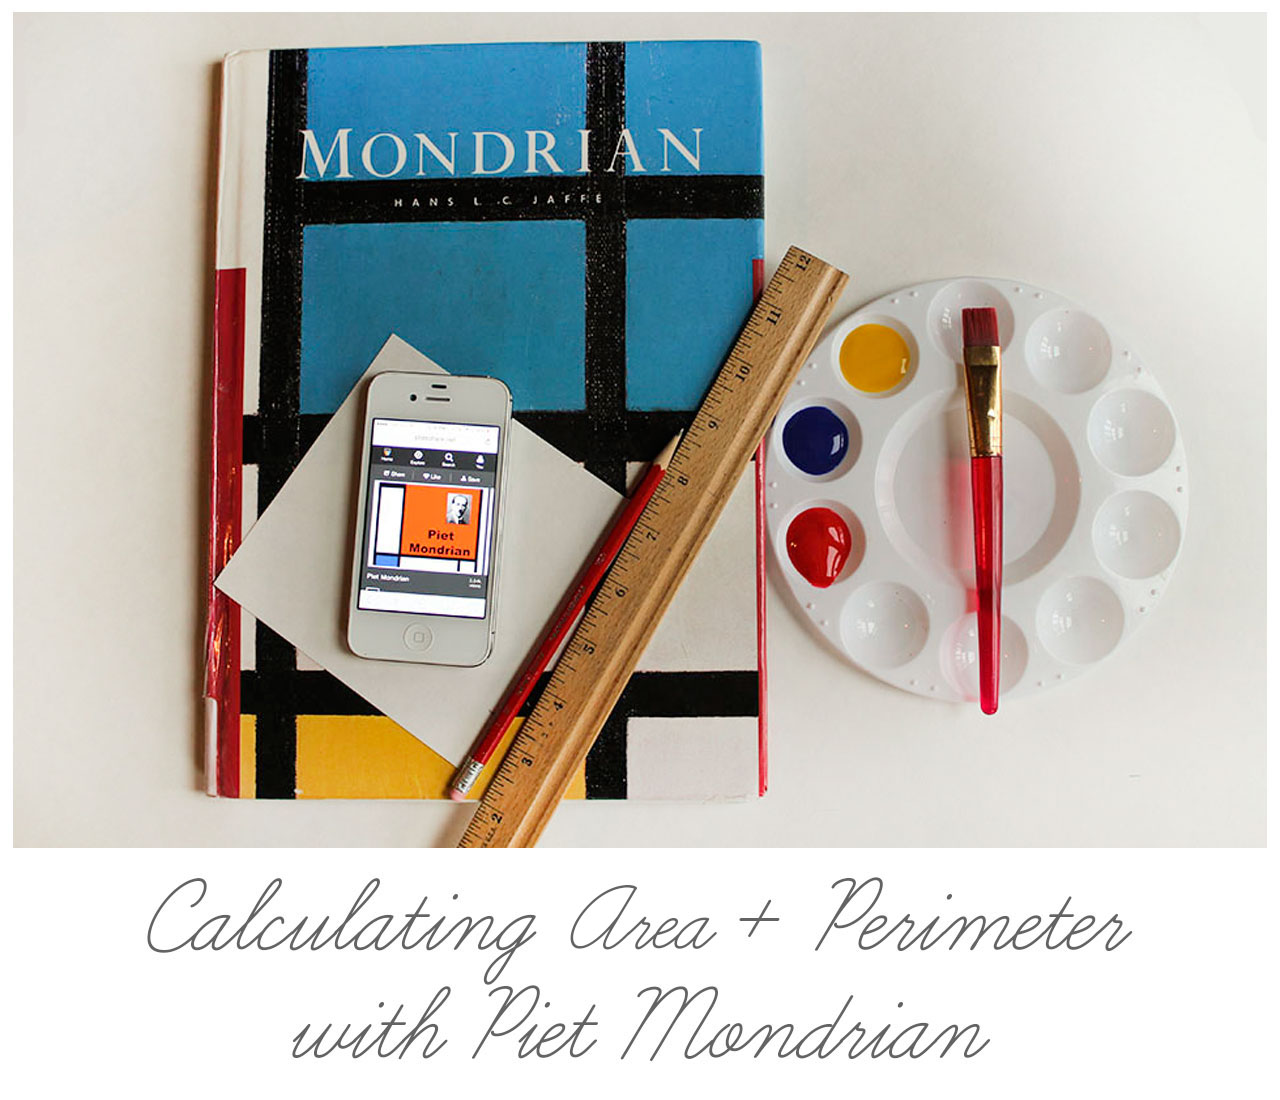 Calculating Area + Perimeter with Piet Mondrian